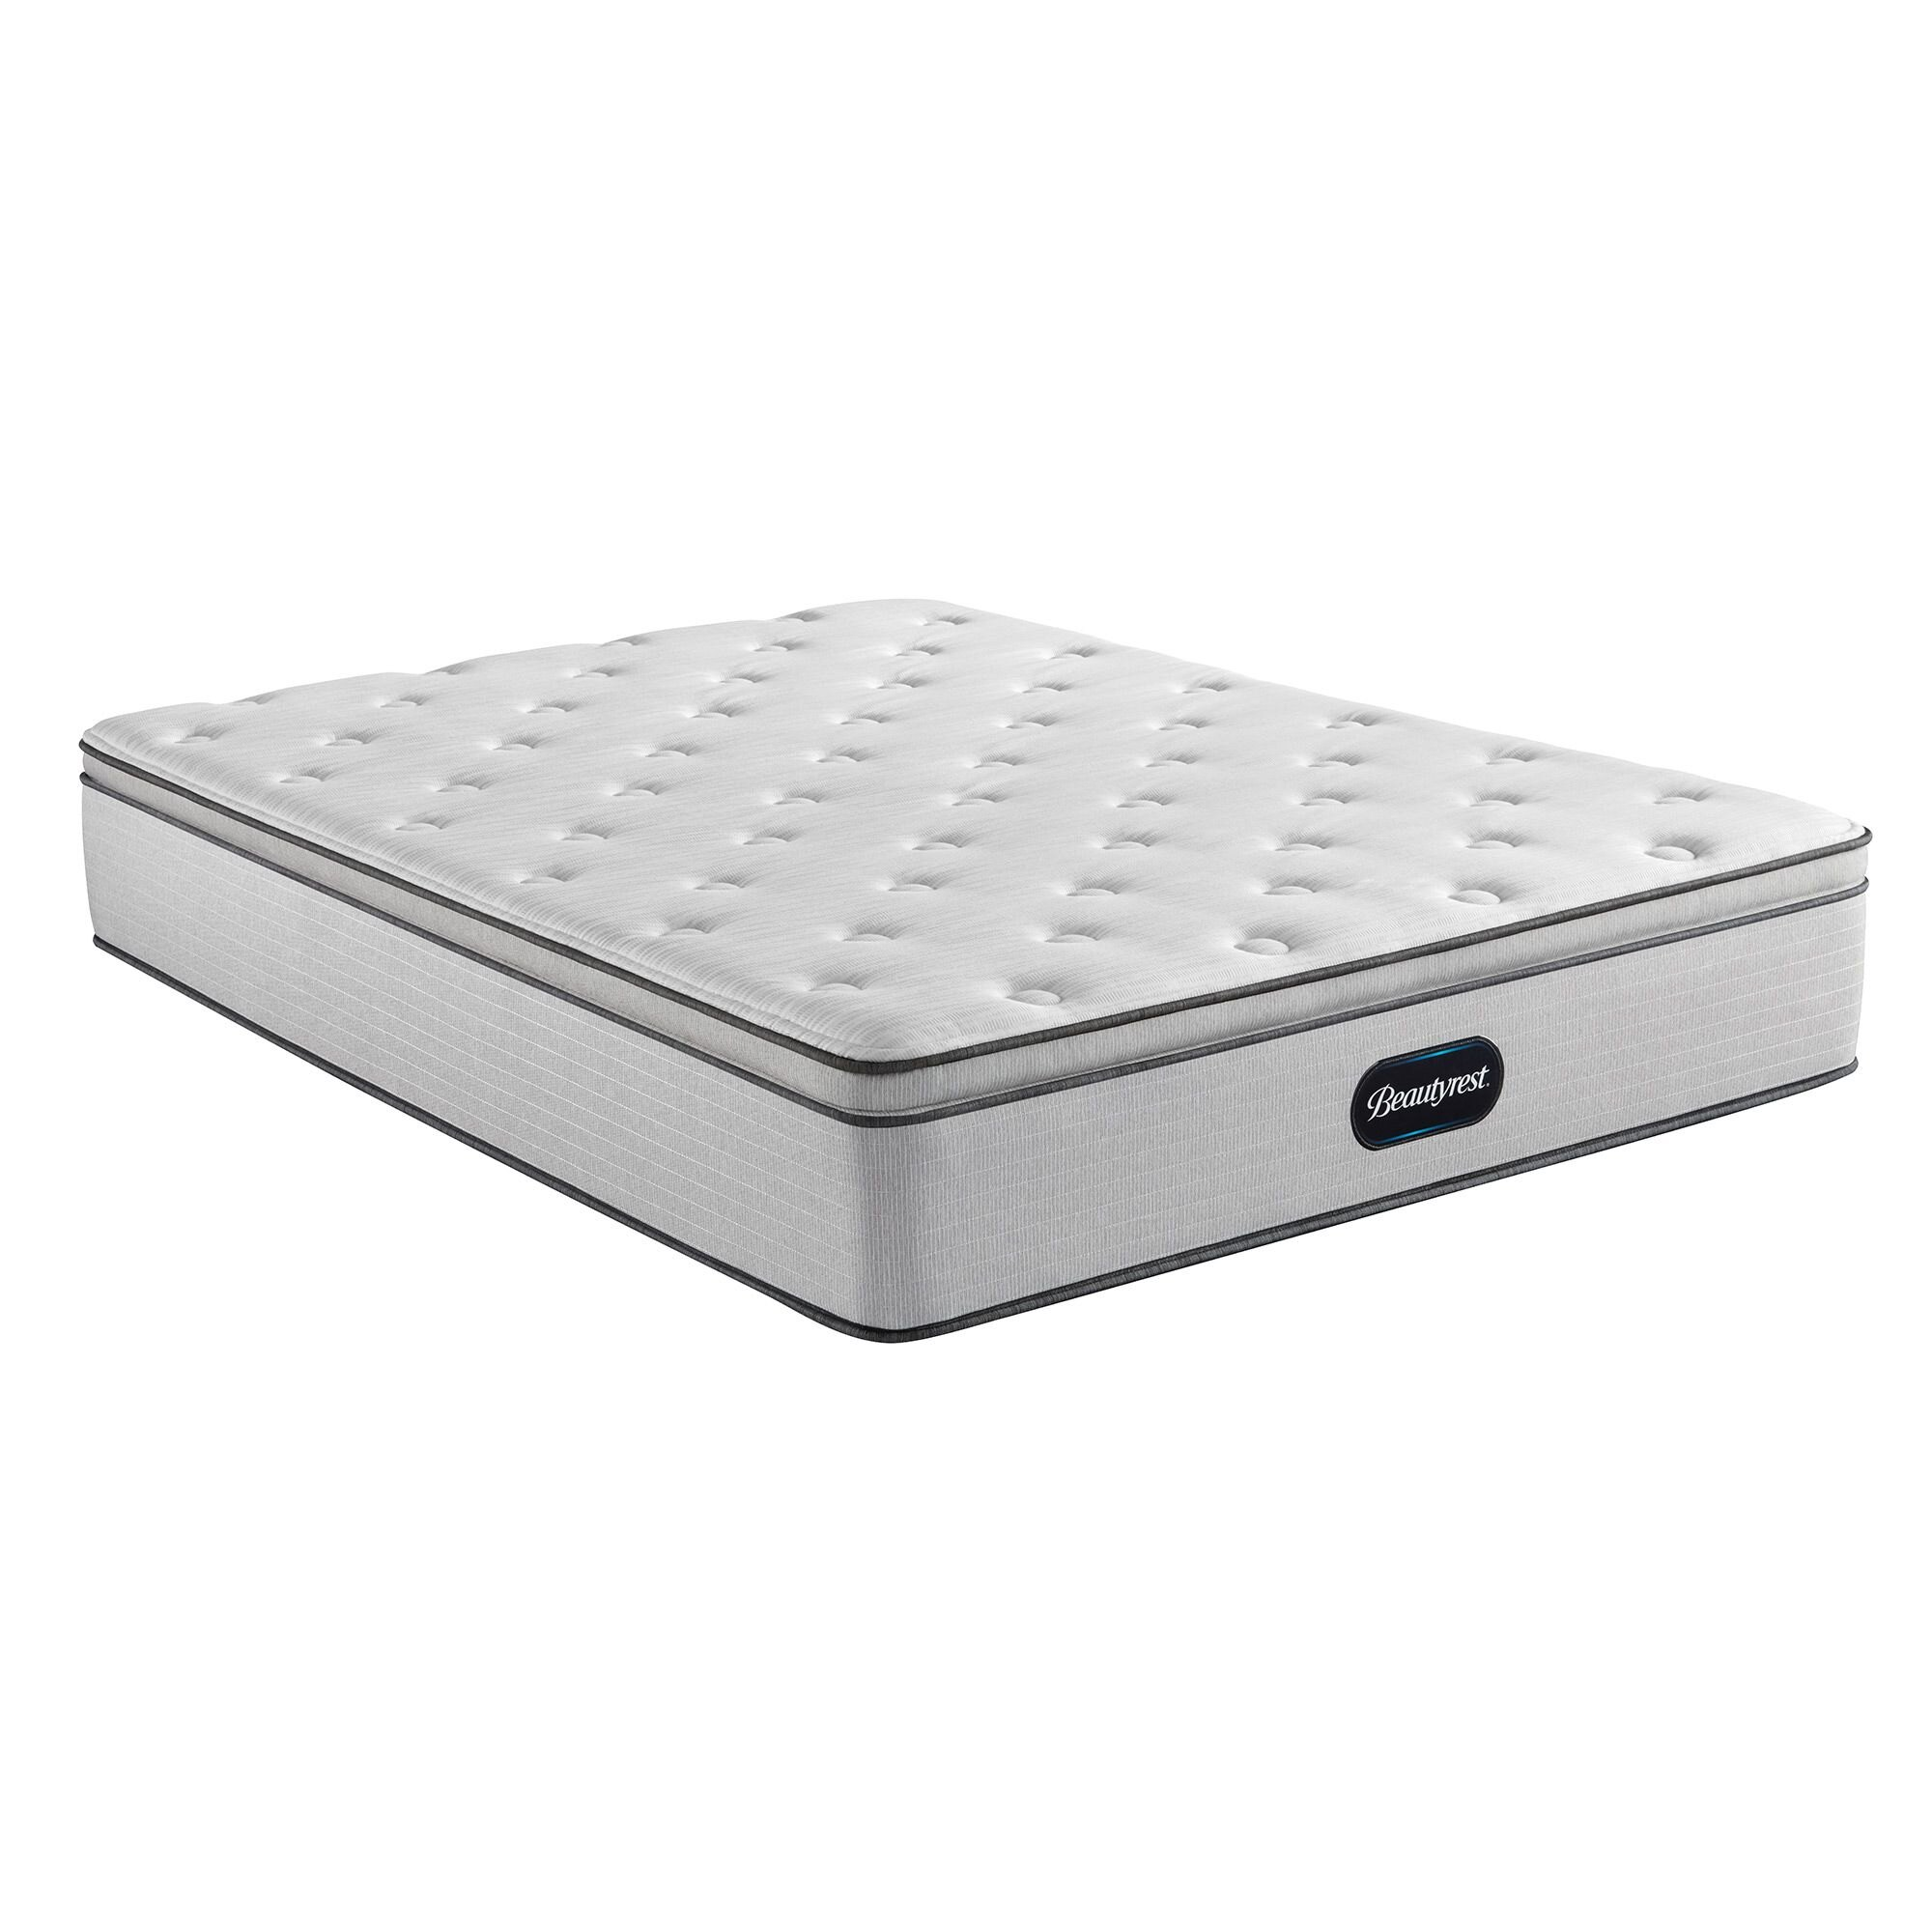 【海外直送】美國席夢思銀標 BR800頂級Pillow Top舒適層床墊 Simmons Beautyrest BR800 Medium Pillow Top Mattress